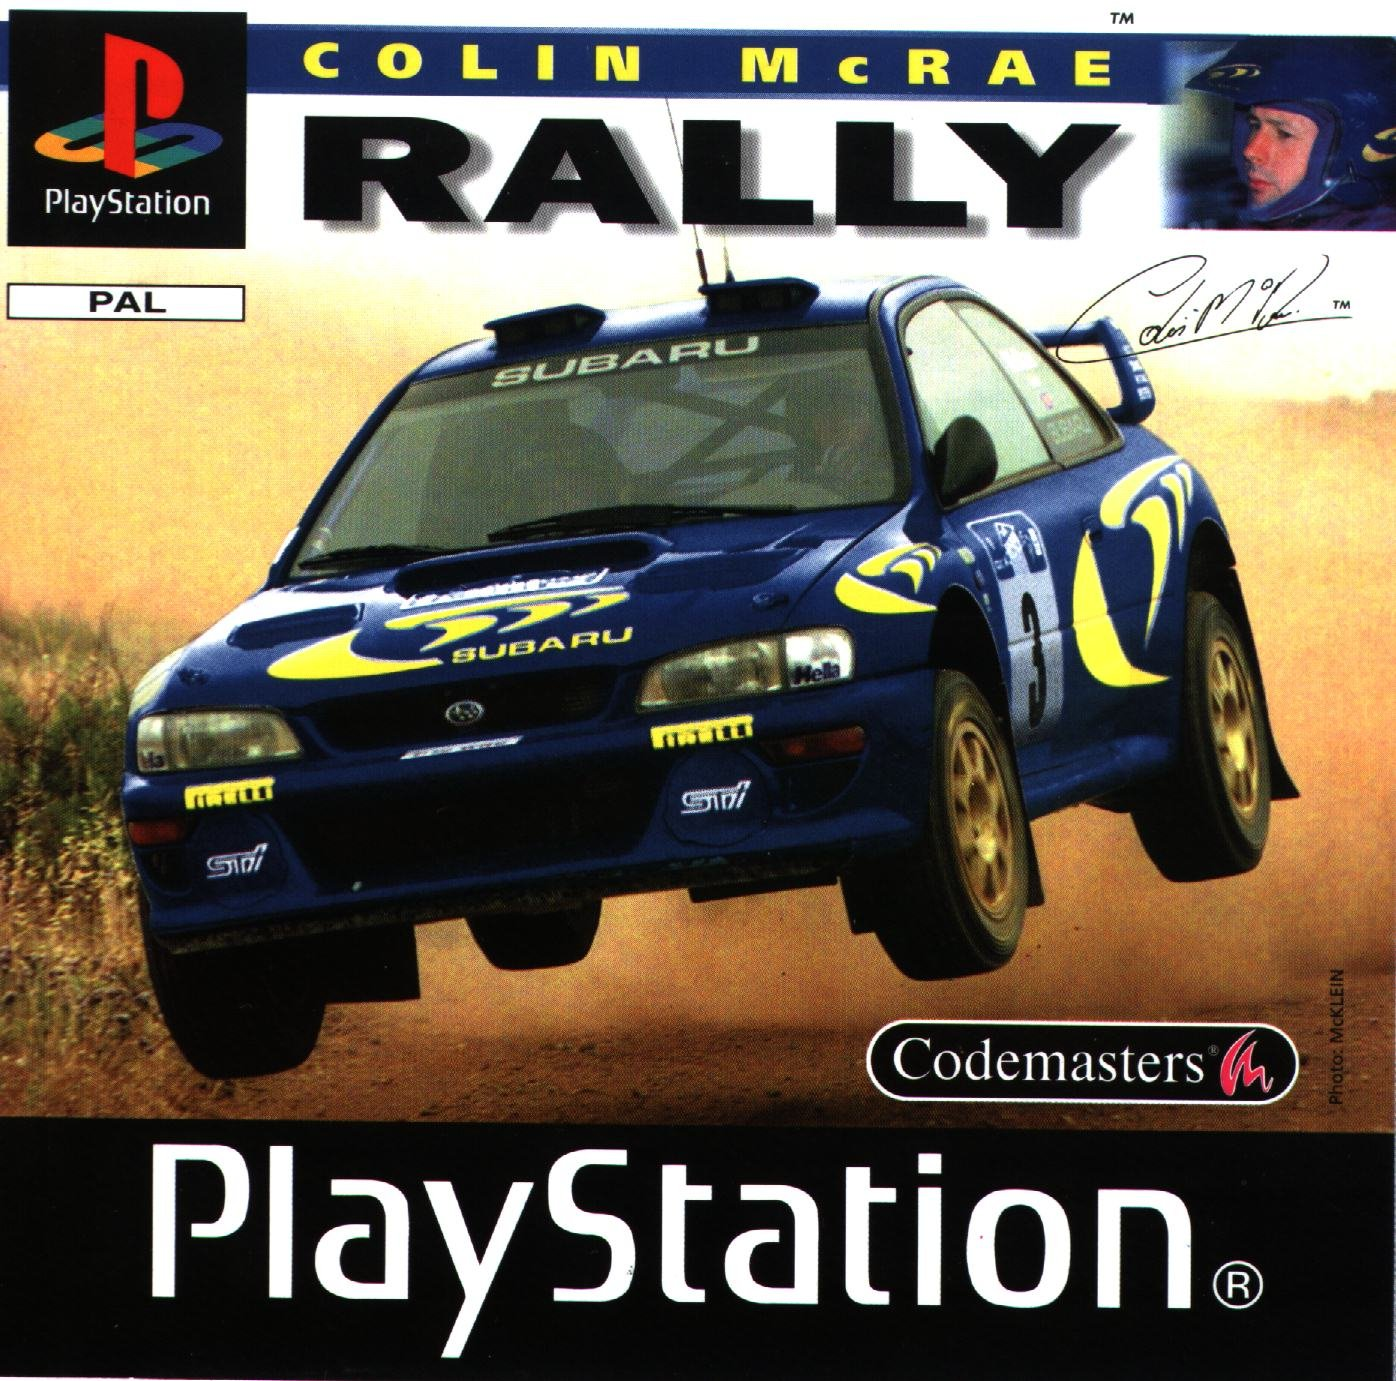 colin mcrae rally ps1 jpg